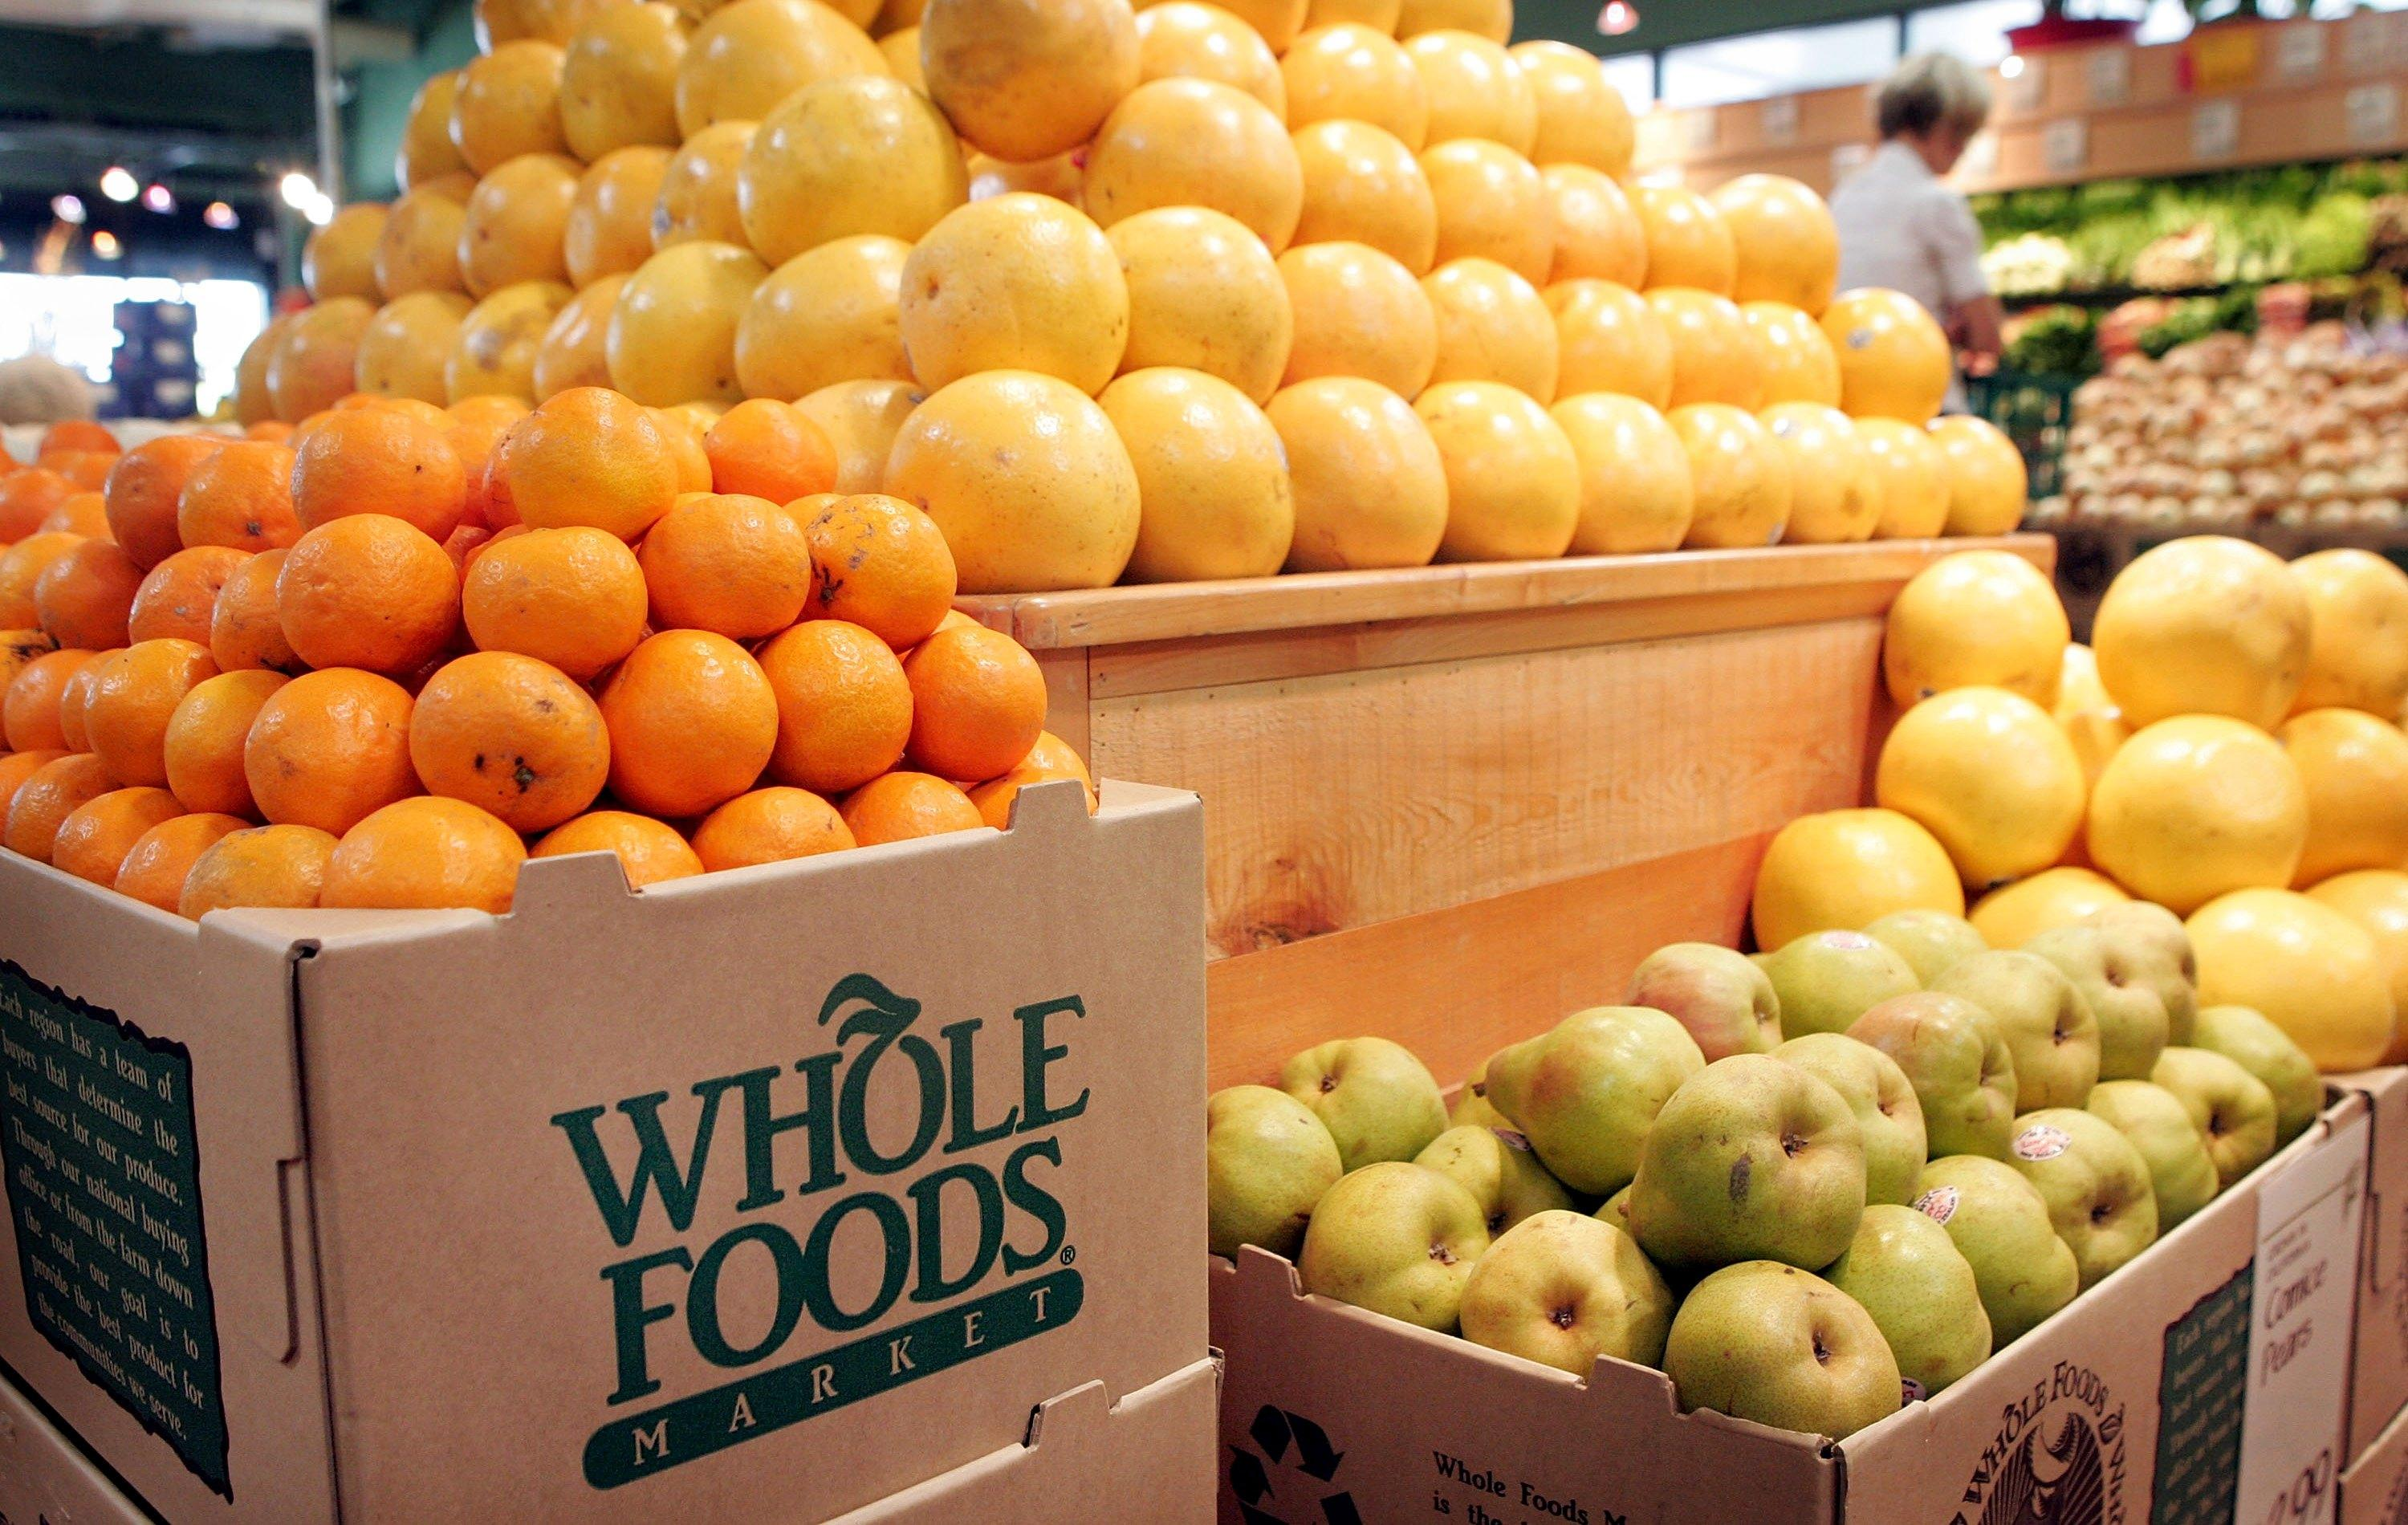 Oranges, grapefruit and pears on display at a Whole Foods store.